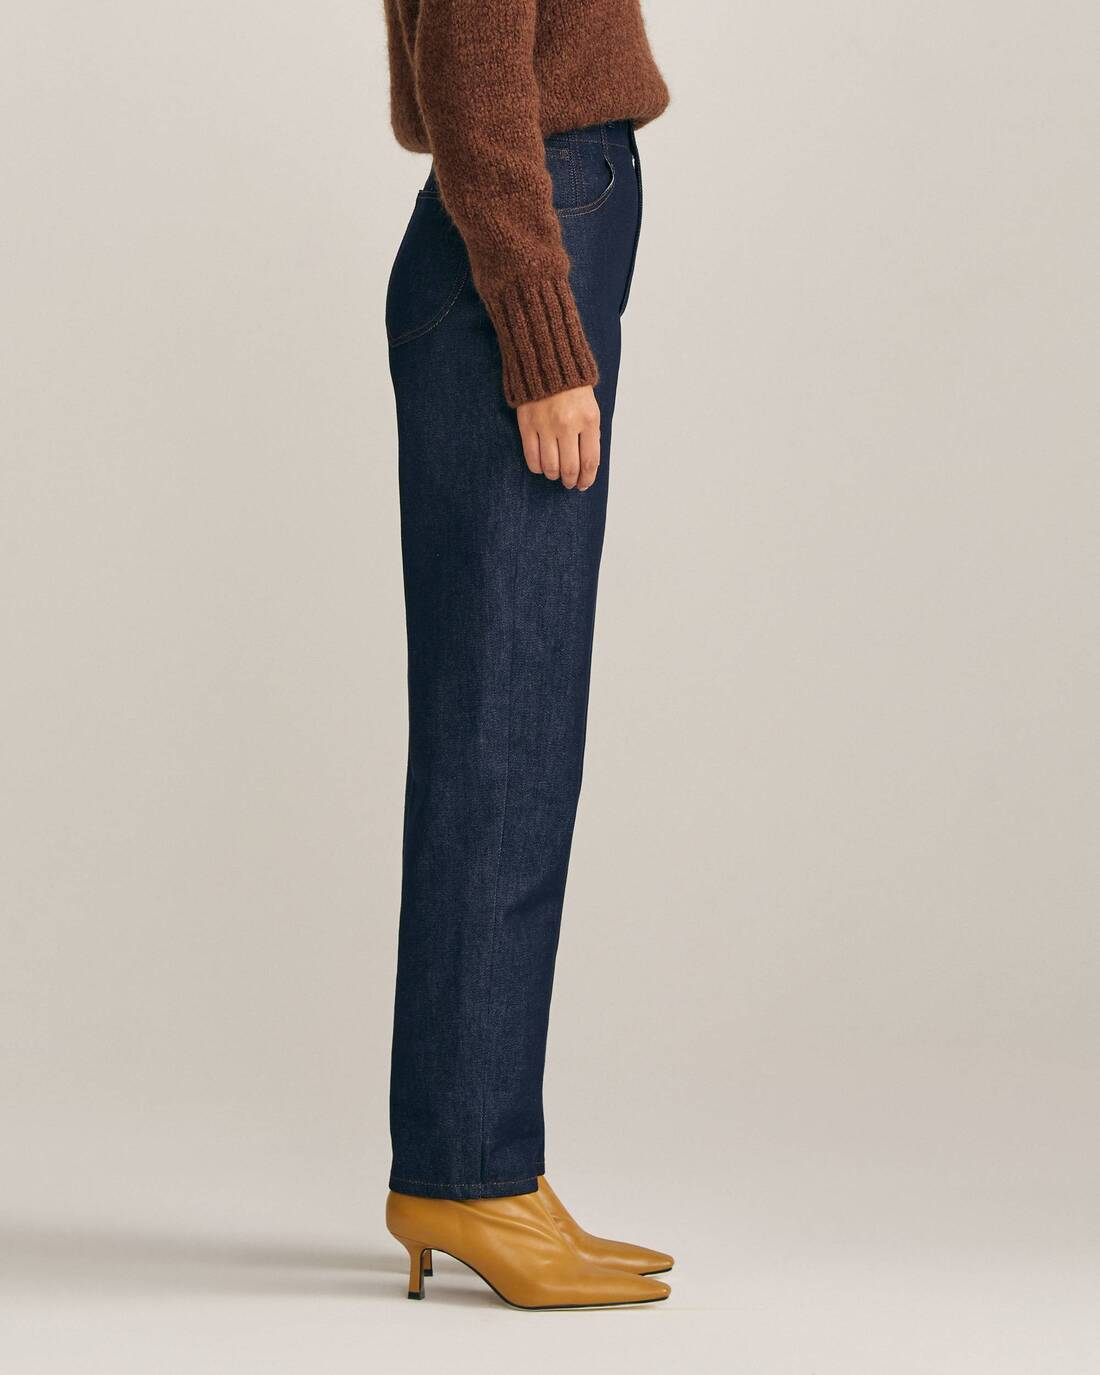 High-waisted cigarette-style trousers